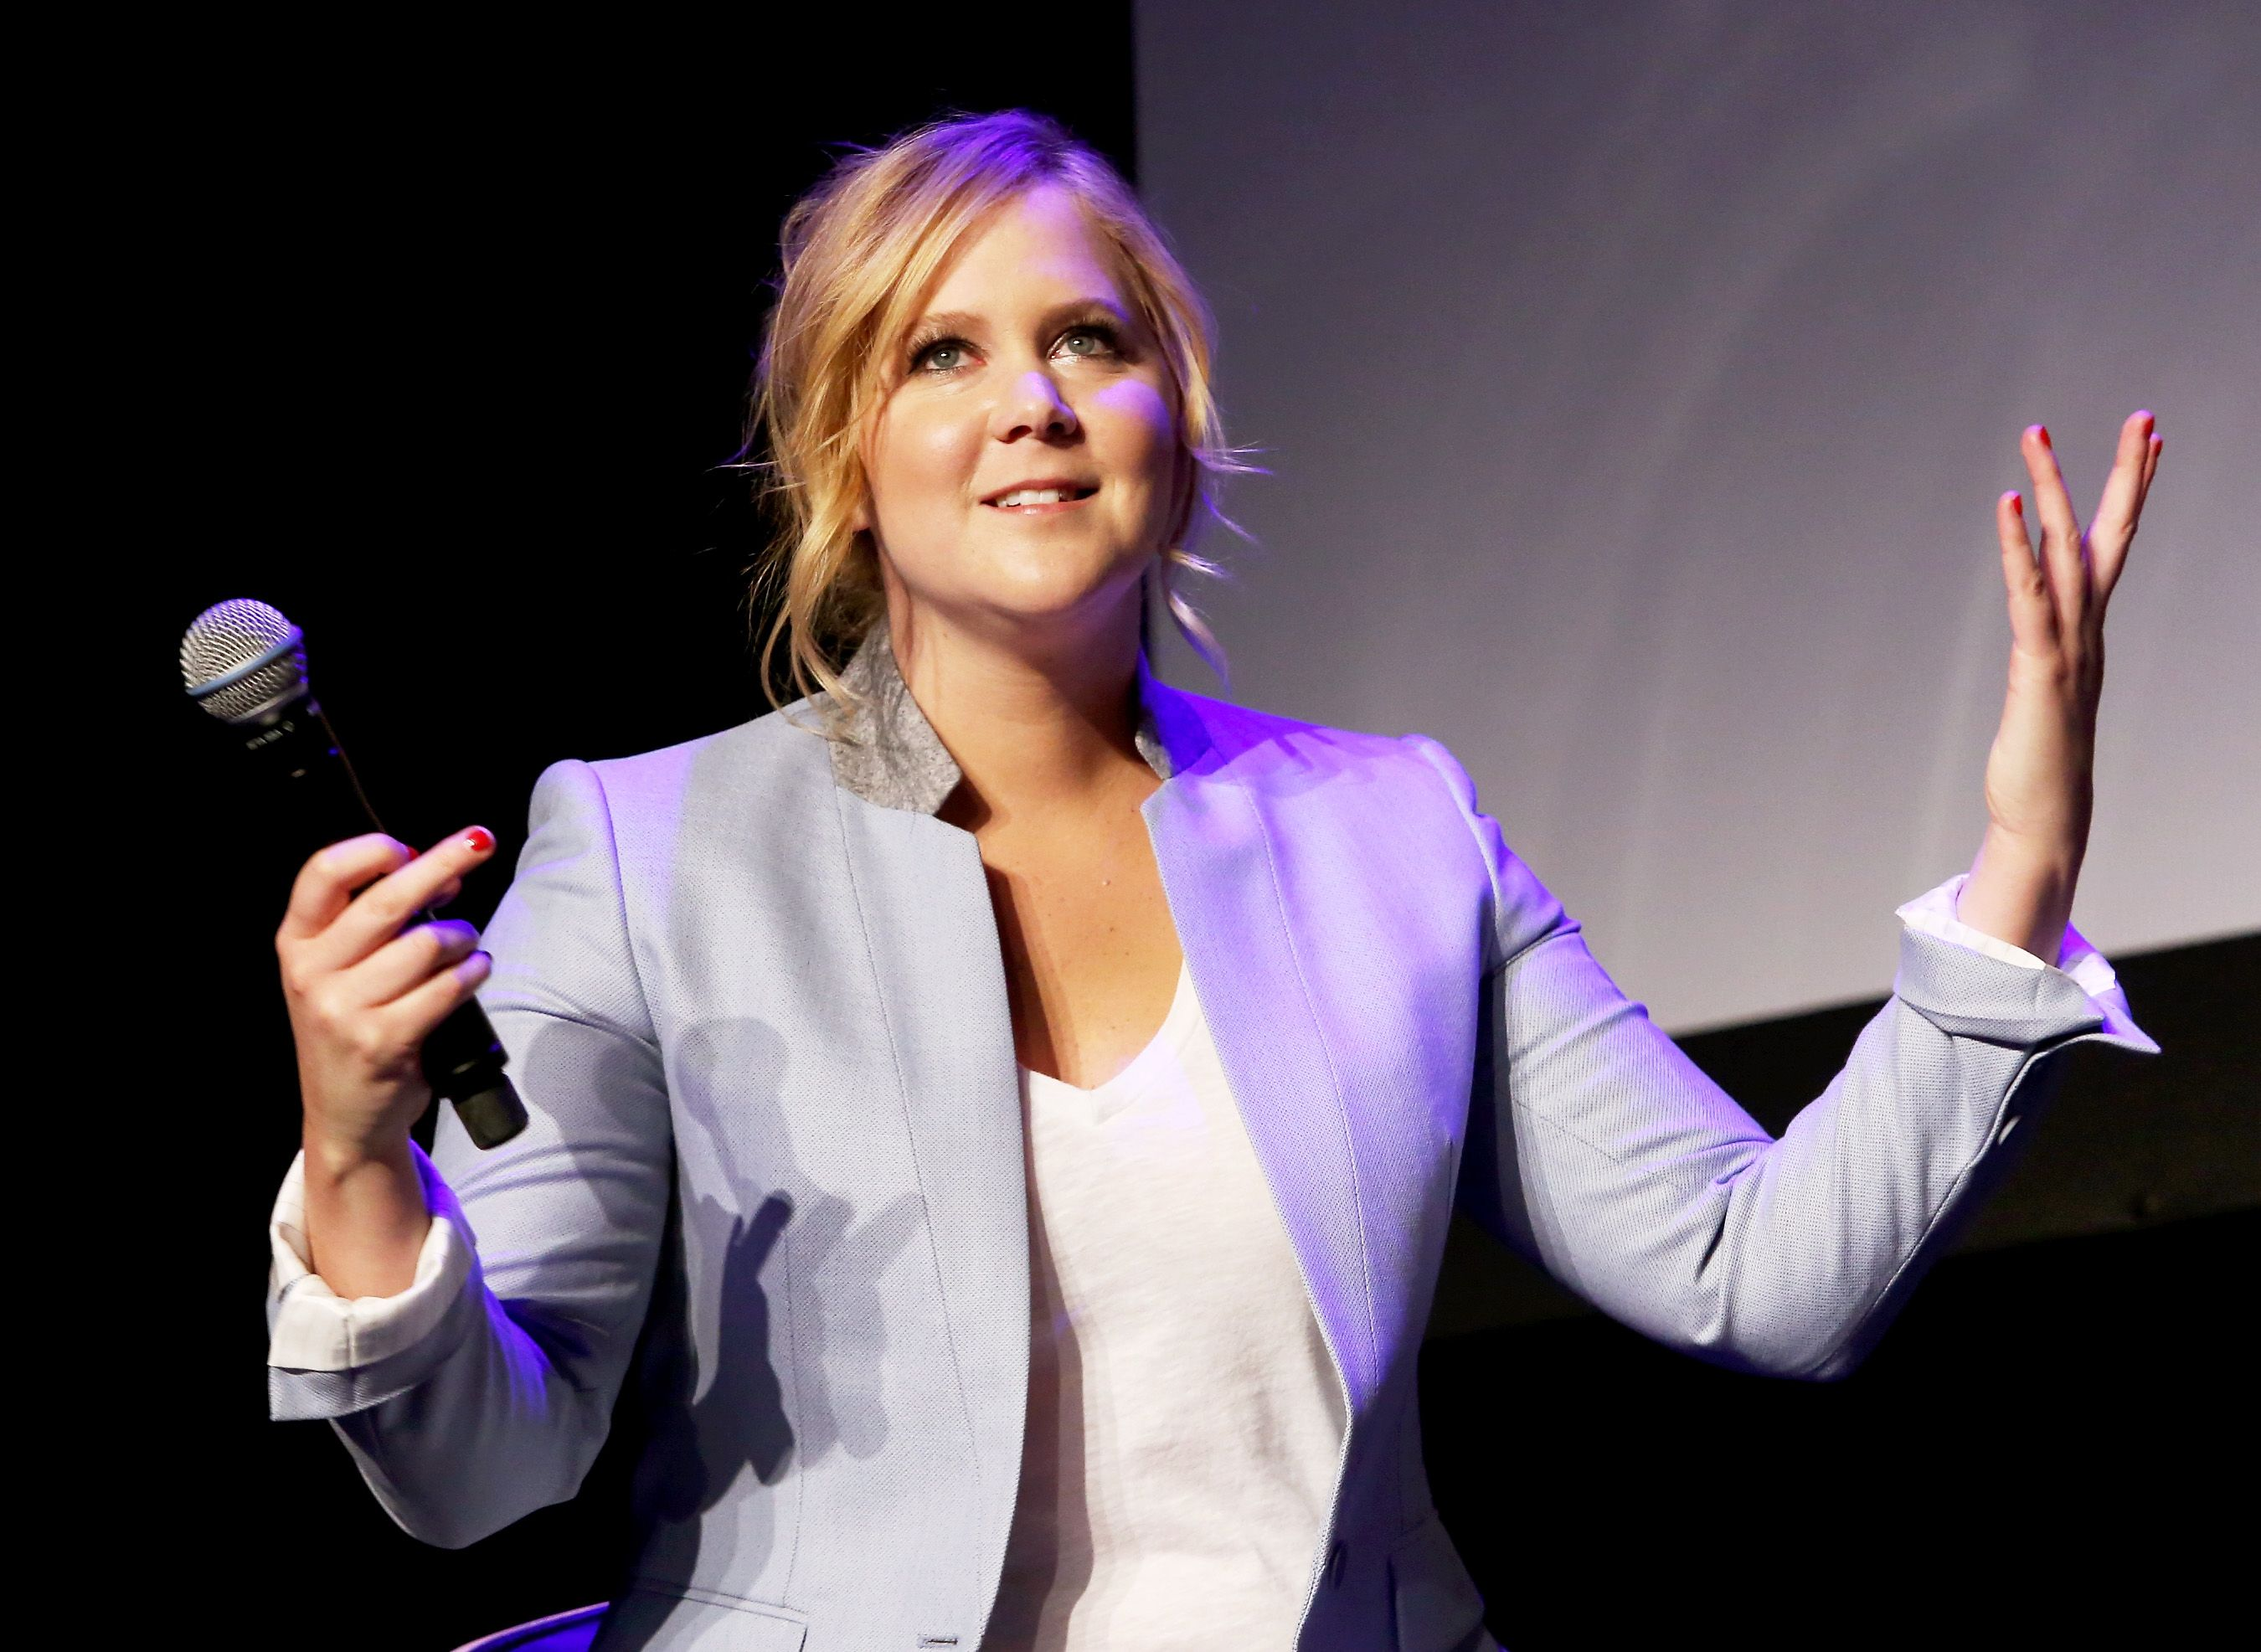 Amy Schumer Tit Pics 10 times amy schumer saw inside our soul